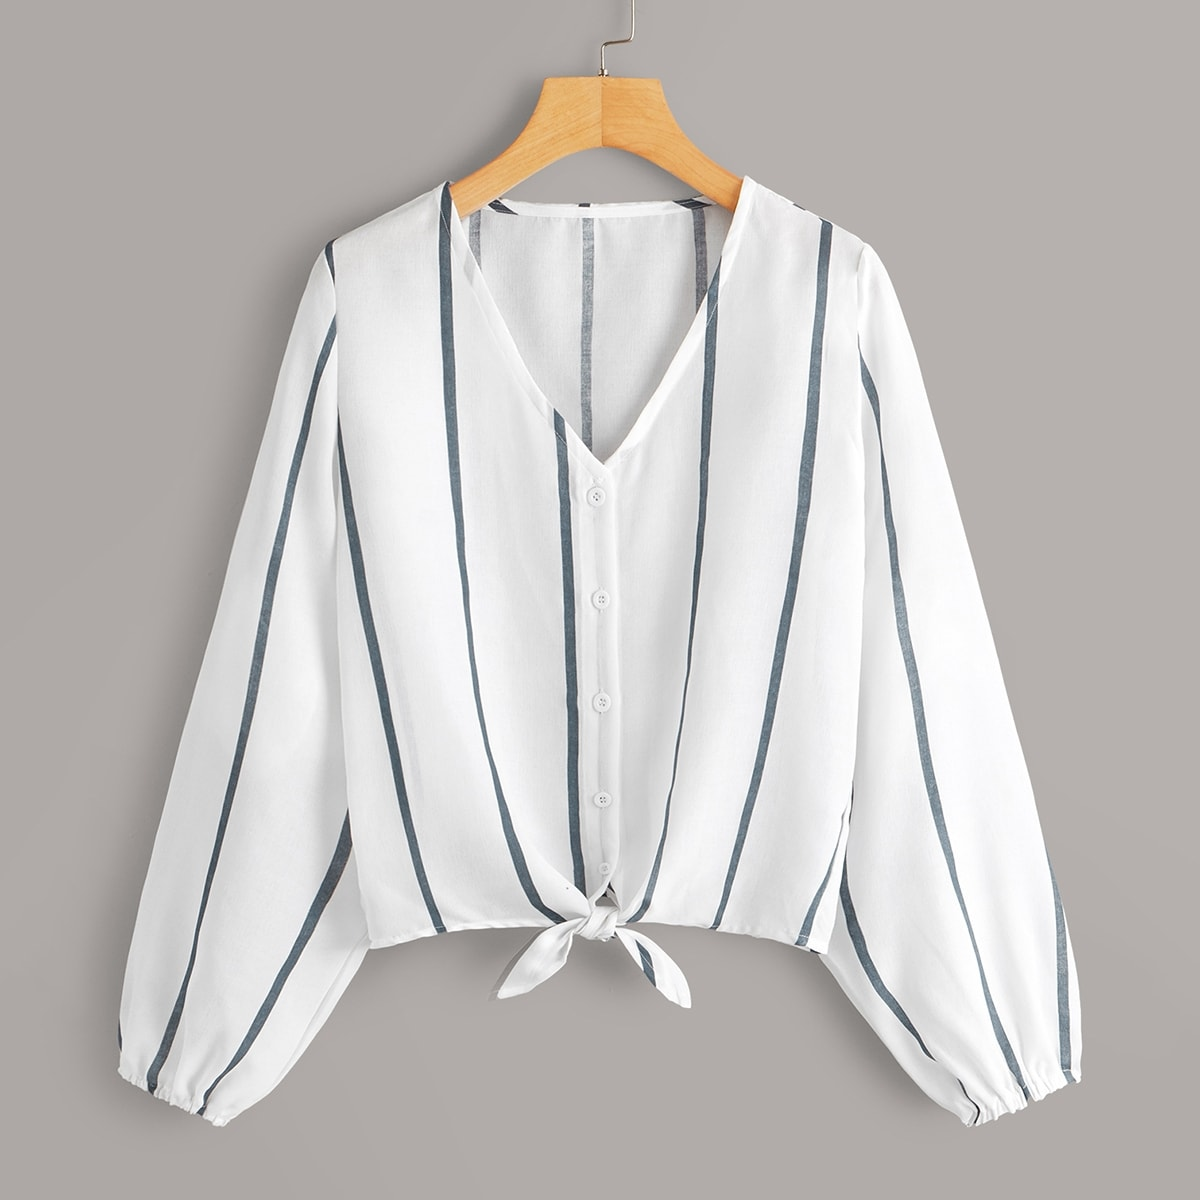 Striped Button Front Knot Blouse in White by ROMWE on GOOFASH